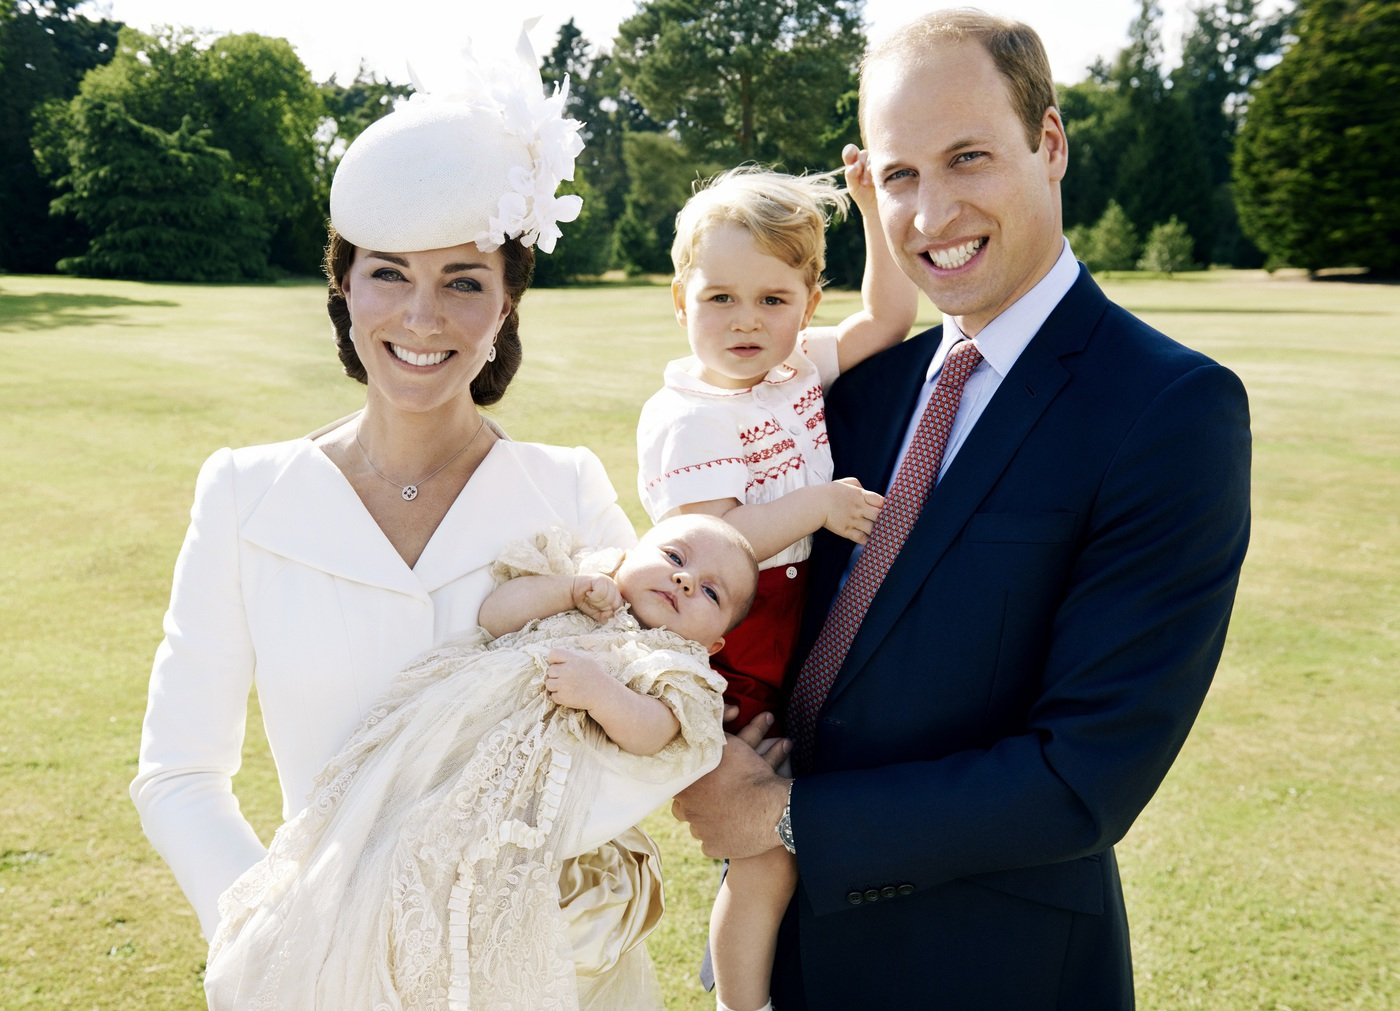 KING'S LYNN, ENGLAND - JULY 05: (EDITORIAL USE ONLY) In this handout image supplied by Mario Testino/ Art Partner, Catherine, Duchess of Cambridge, Prince William, Duke of Cambridge and their children Princess Charlotte of Cambridge and Prince George of Cambridge pose for a photo after the christening of Princess Charlotte of Cambridge at the Sandringham Estate on July 5, 2015 in King's Lynn, England. (Photo by Mario Testino/ Art Partner via Getty Images) ***Terms of release, which must be included and passed-on to anyone to whom this image is supplied: USE AFTER 10/10/2015 must be cleared by Art Partner. This photograph is for editorial use only. NO commercial use. NO use in calendars, books or supplements. Use on a cover, or for any other purpose, will require approval from Art Partner and the Kensington Palace Press Office. There is no charge for the supply, release or publication of this official photograph. This photograph must not be digitally enhanced, manipulated or modified and must be used substantially uncropped. Picture must be credited: copyright Mario Testino /Art Partner.***